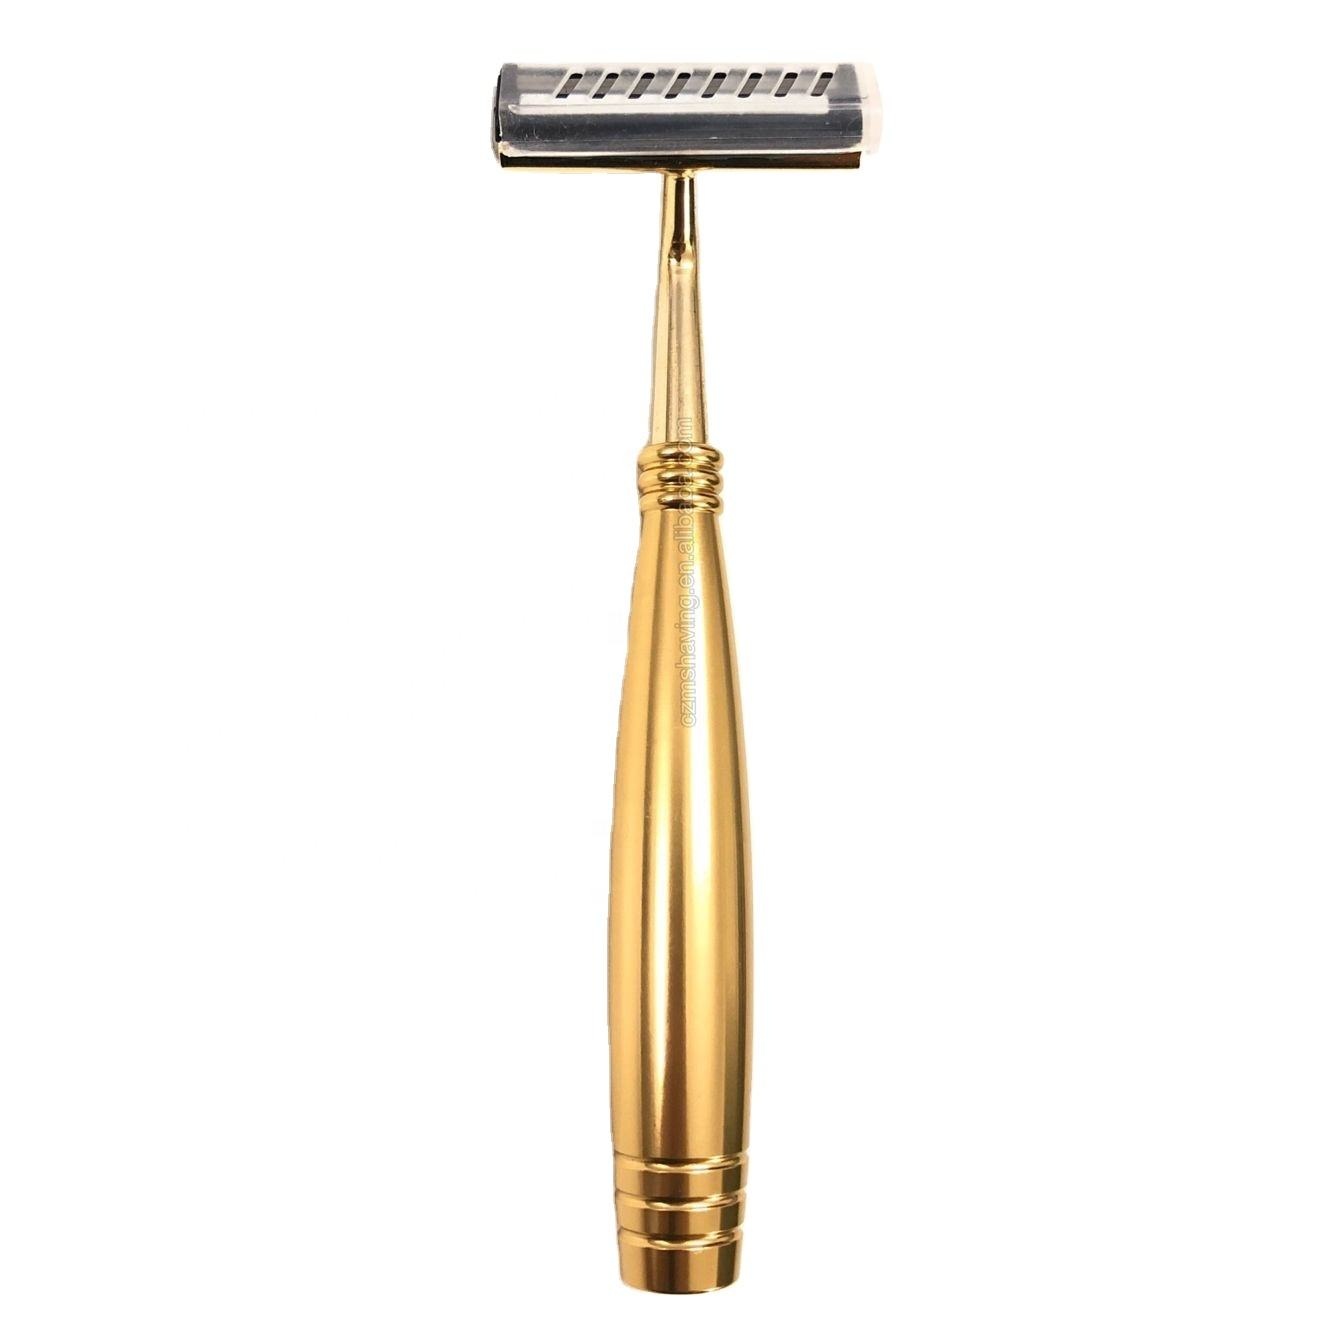 China Factory Best Selling Hotel Supplies Golden Metal Handle Twin Blades Razor For Men Shaving Razor